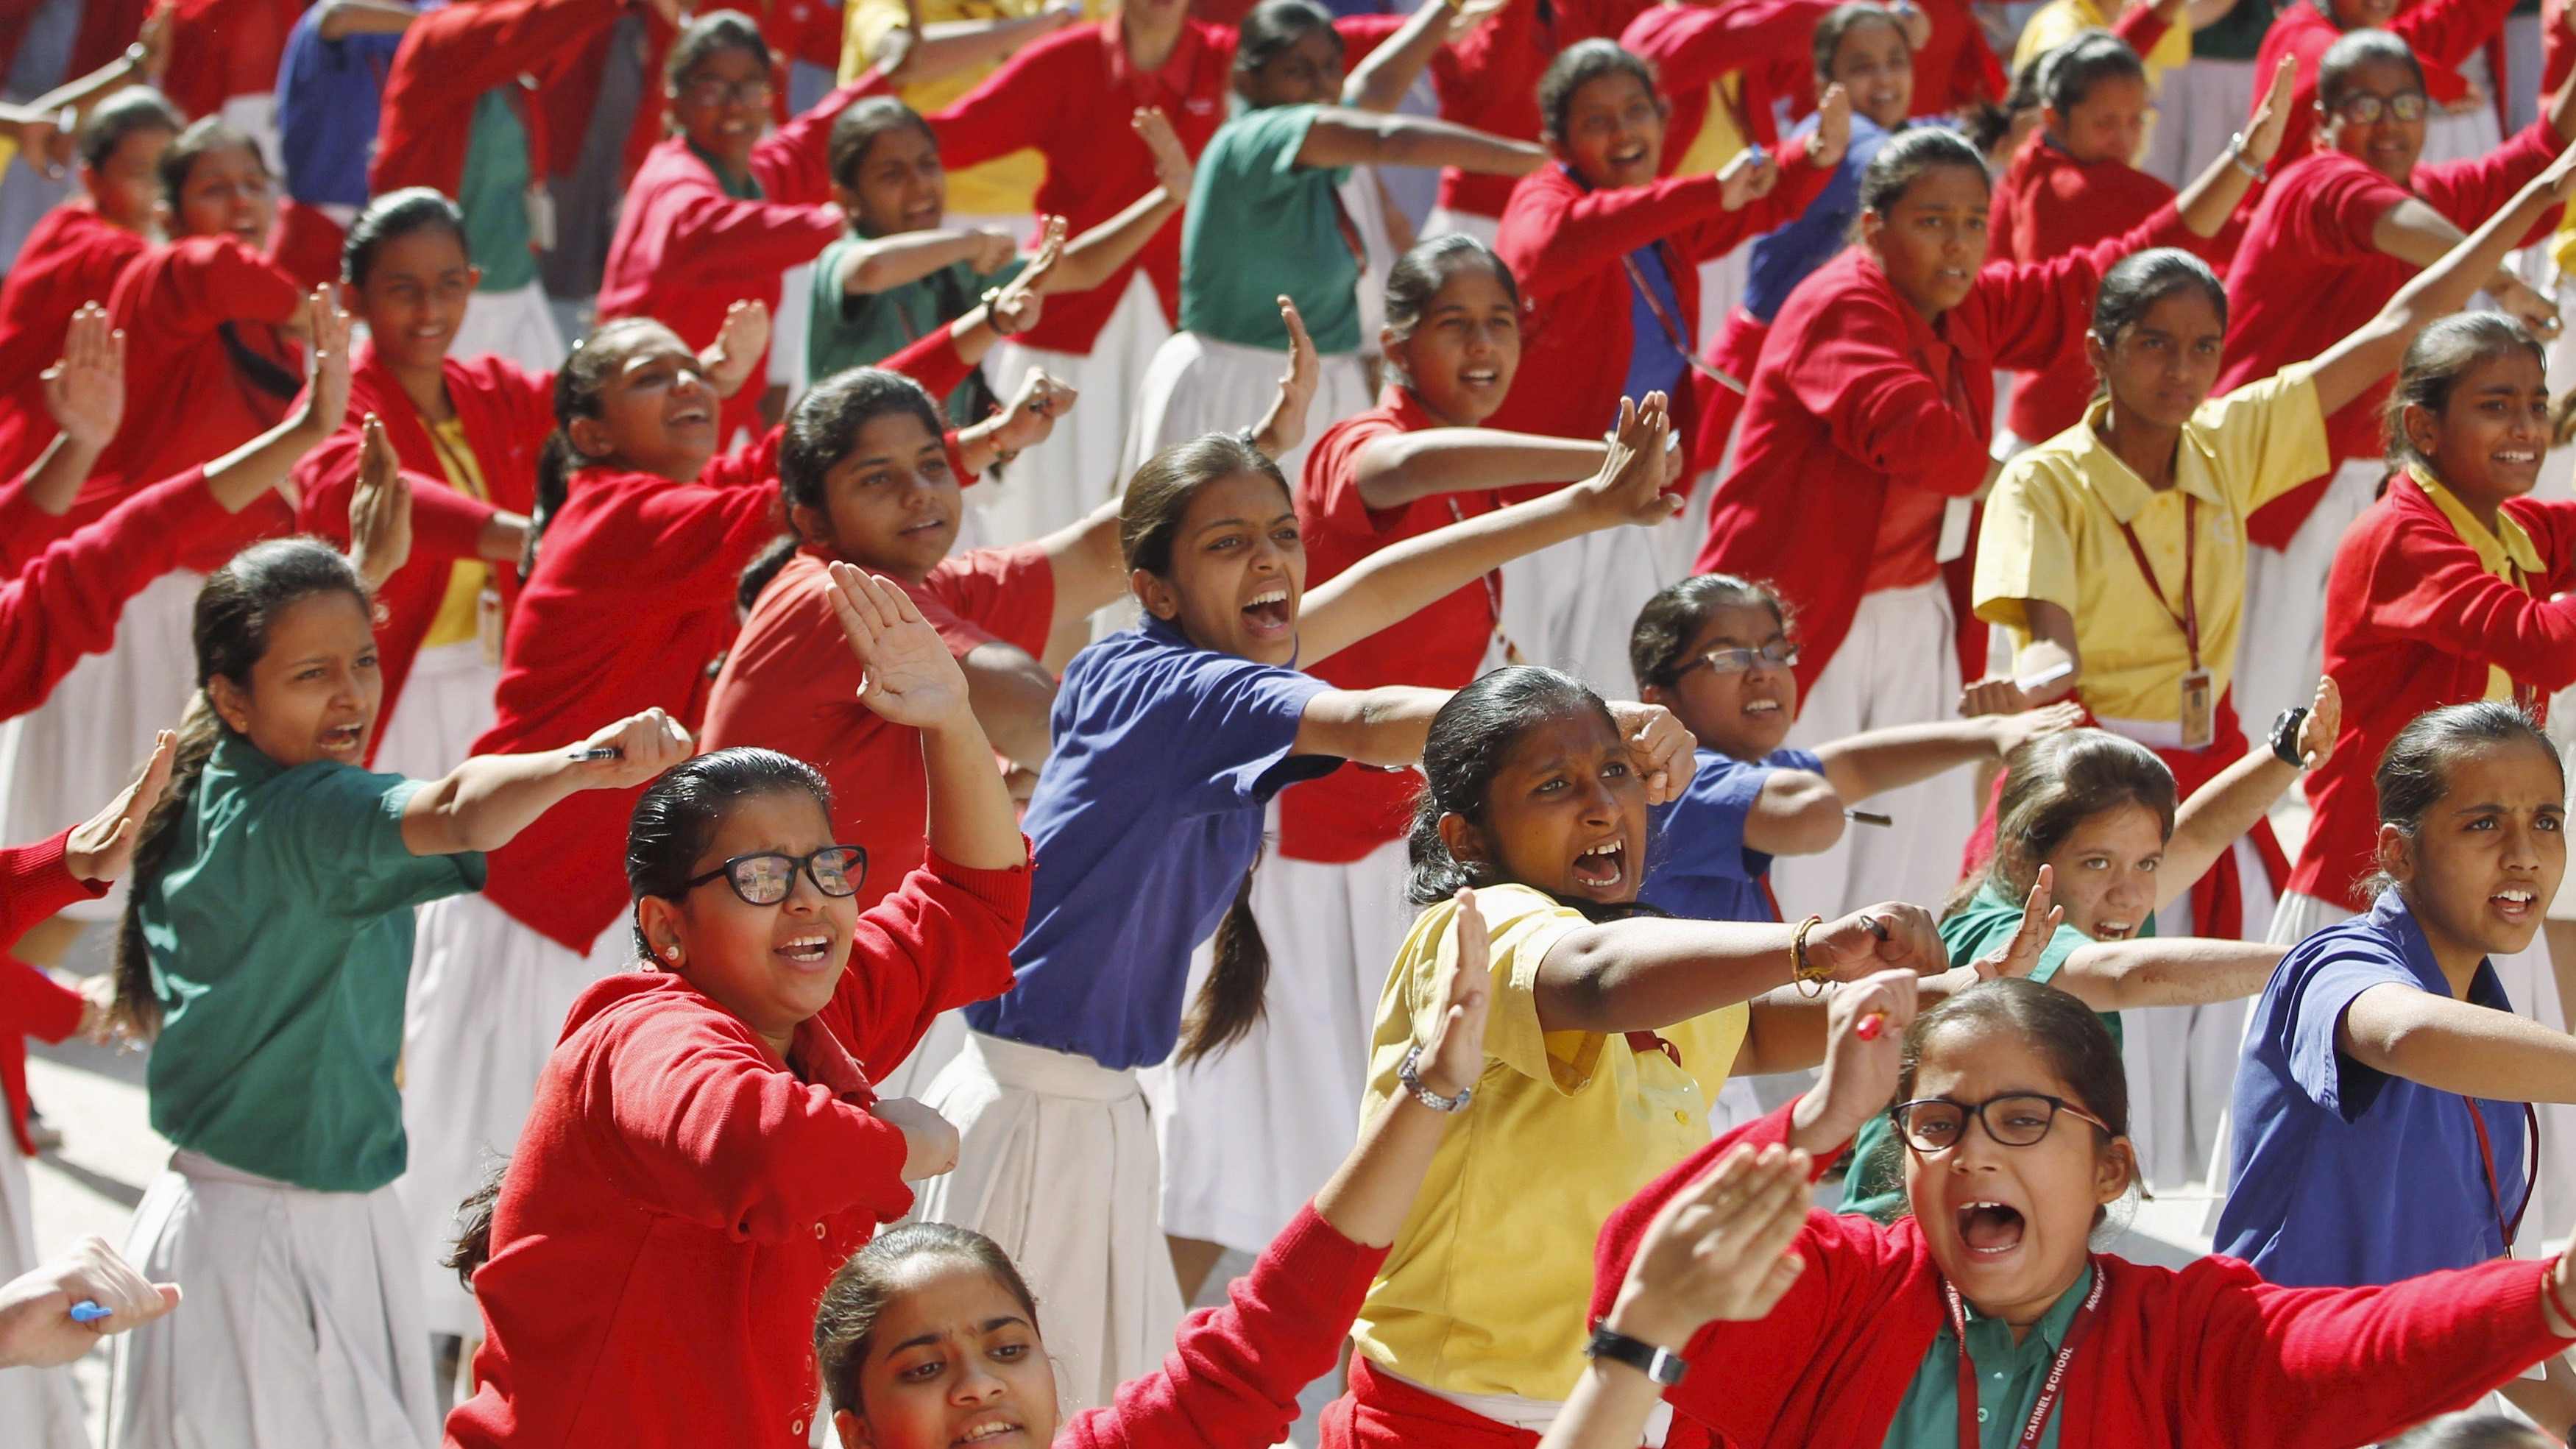 Schoolgirls practice martial arts during an event in Ahmedabad, India, December 16, 2015, to mark the third anniversary of the fatal gang rape of a woman on a Delhi bus in December 2012. REUTERS/Amit Dave - RTX1YXB1